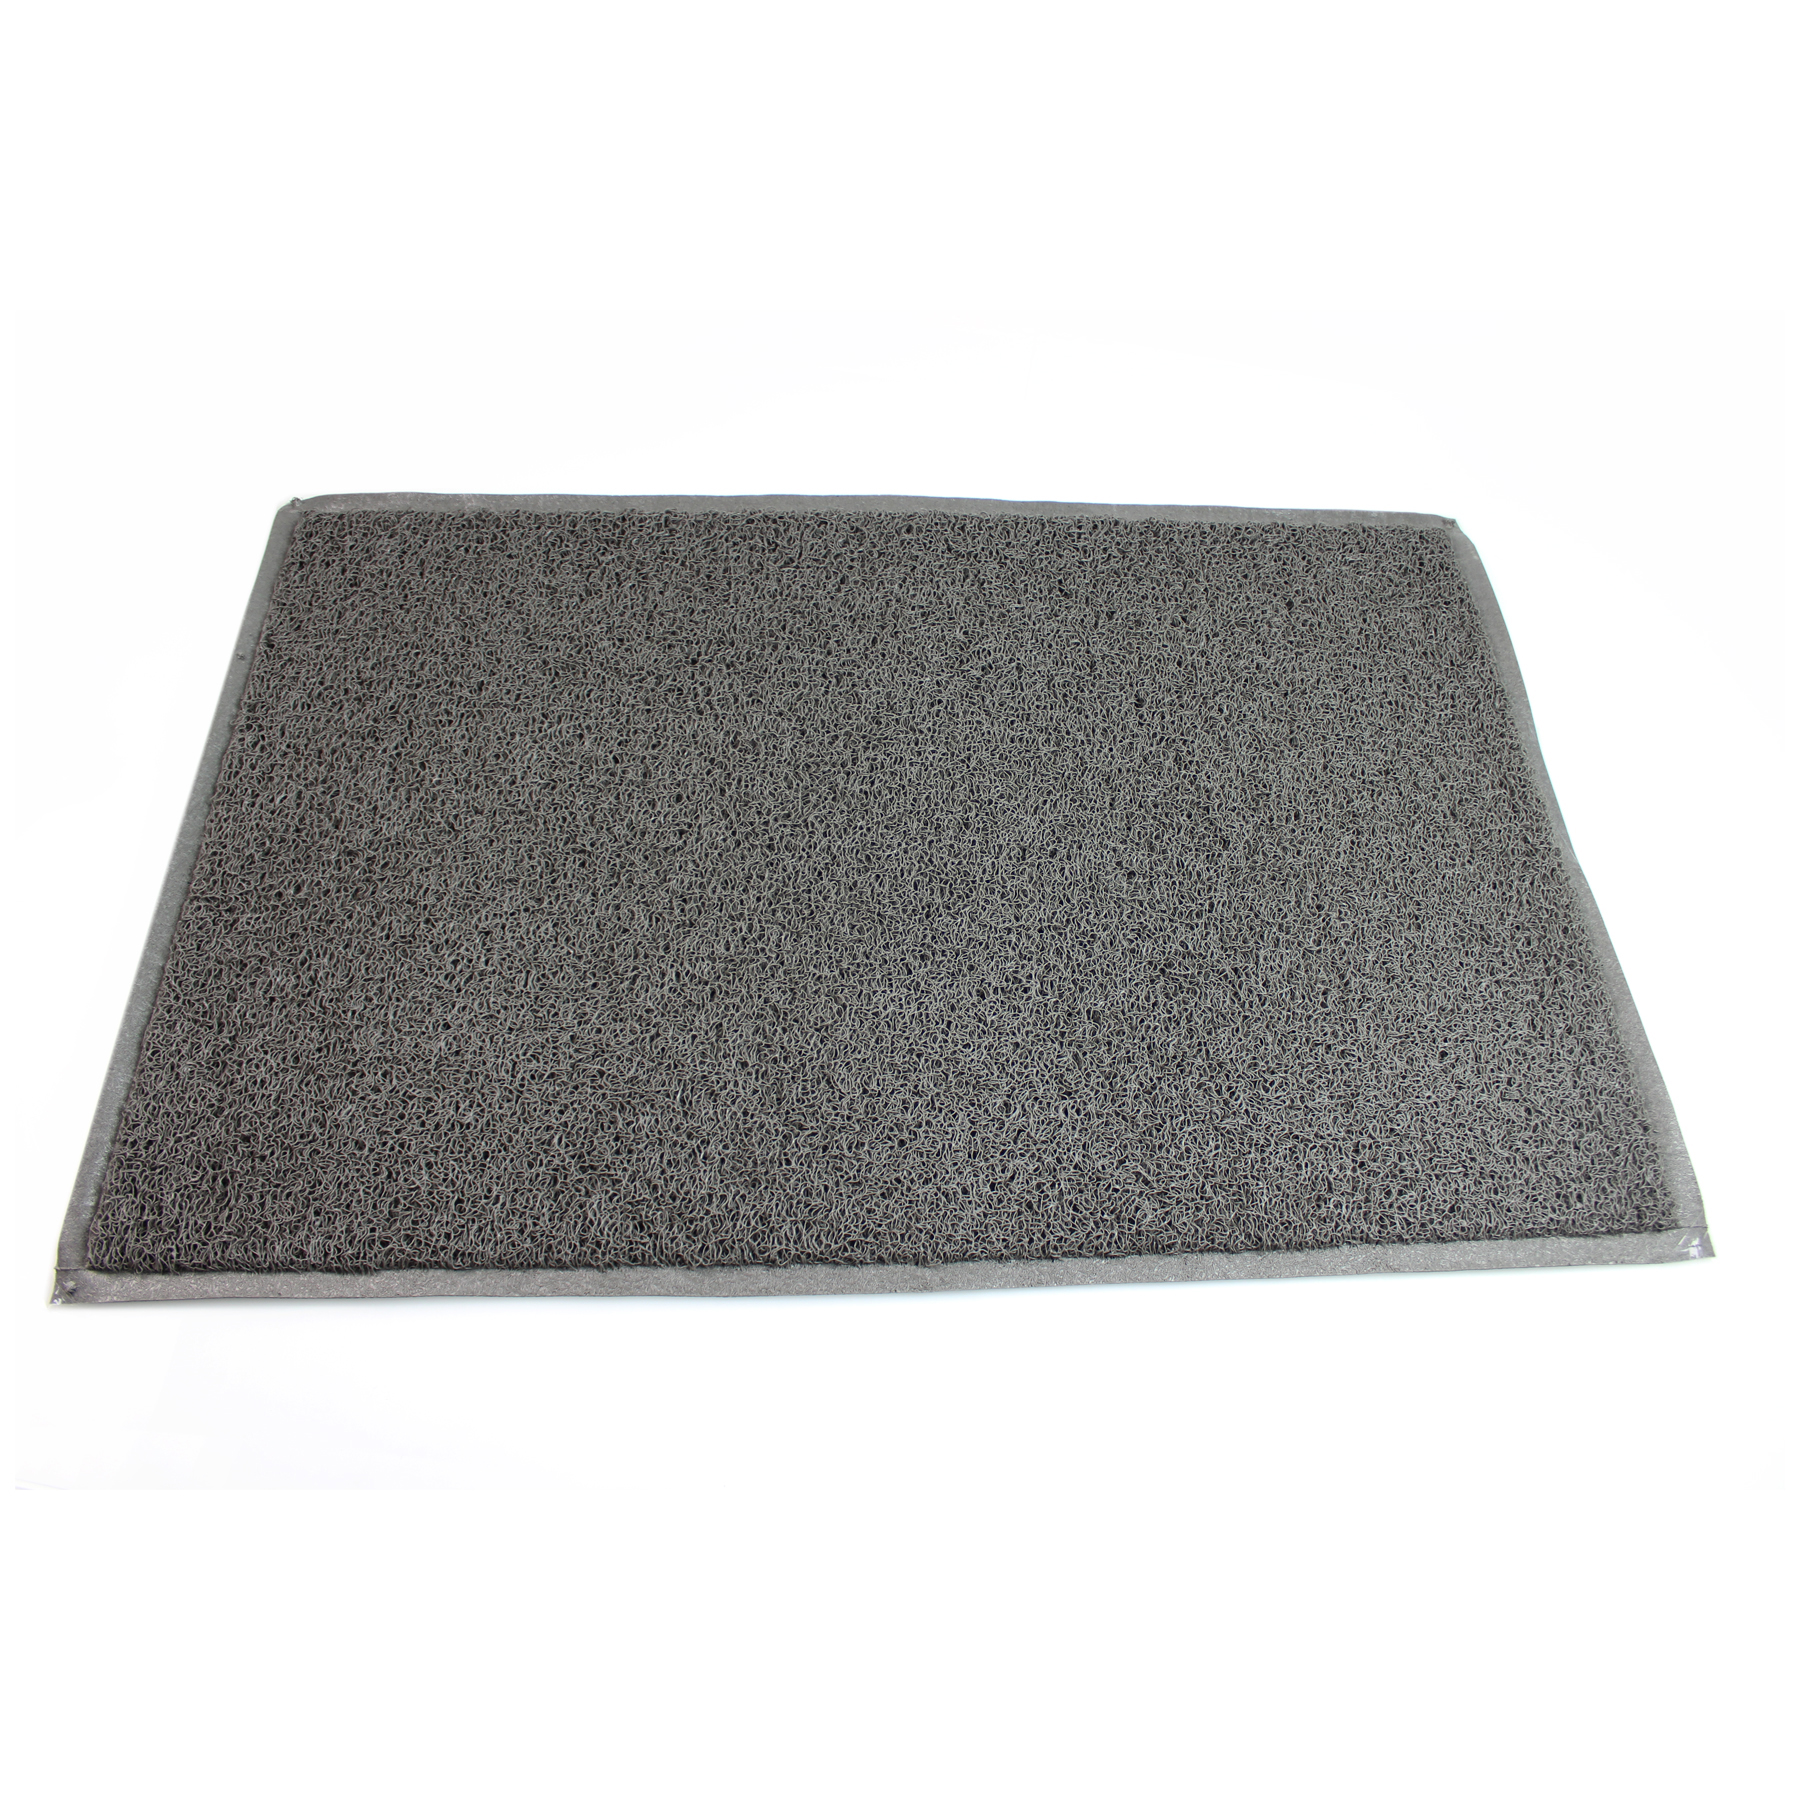 Door mats Doortex Twistermat Outdoor Mat Vinyl Fibre Surface Vinyl Back 600x900mm Storm Grey Ref FC46090TWISG